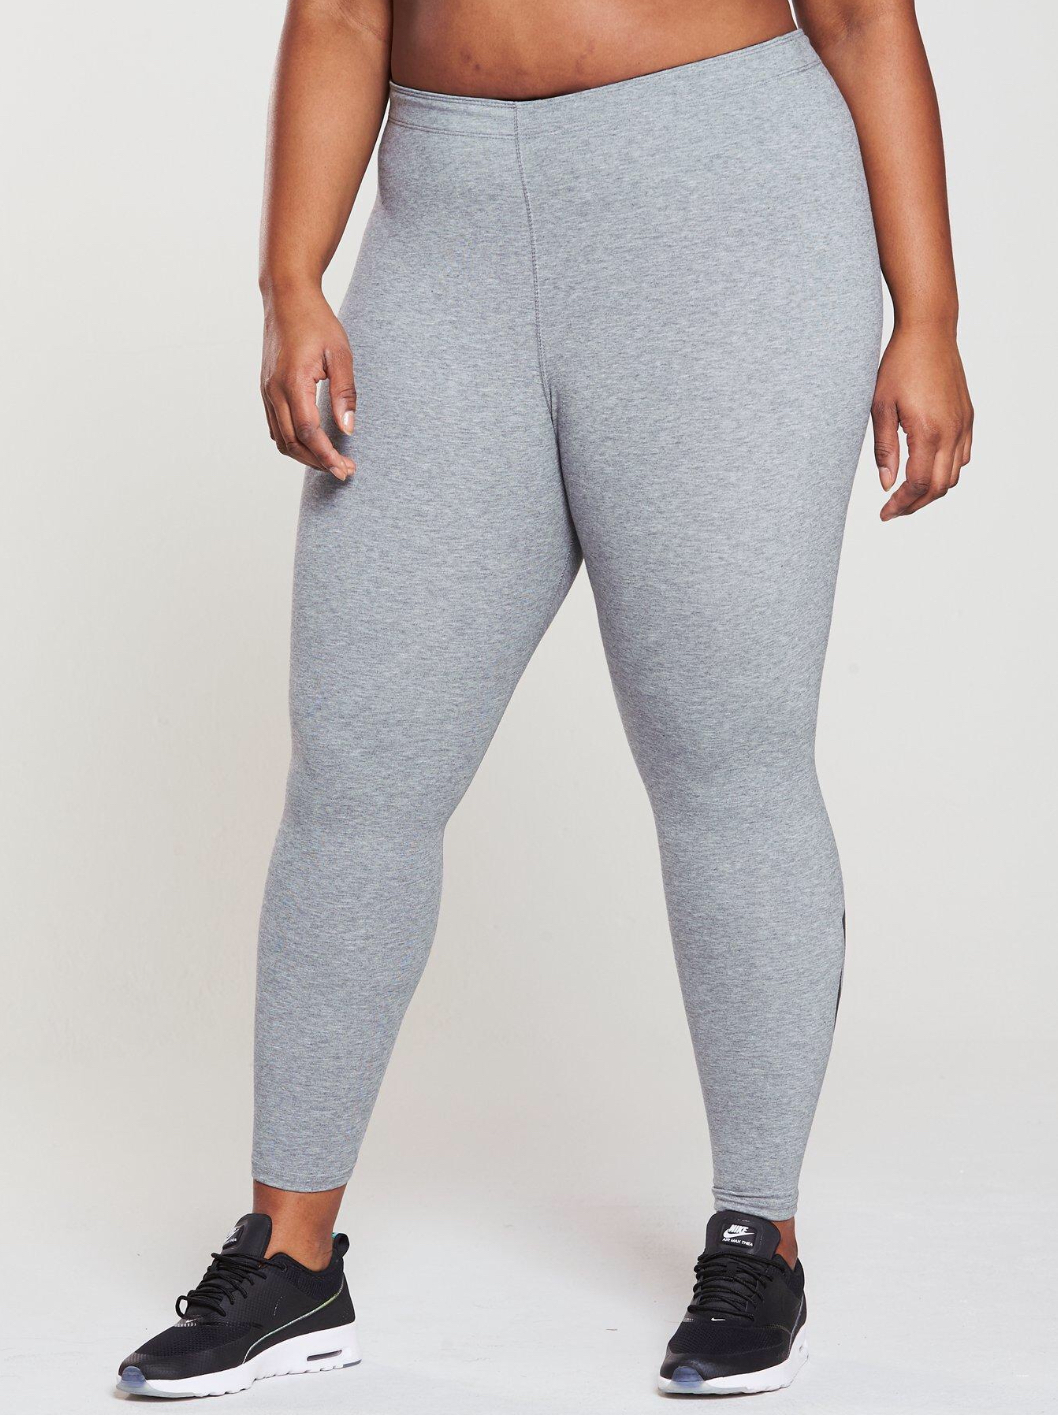 A woman is wearing grey leggings